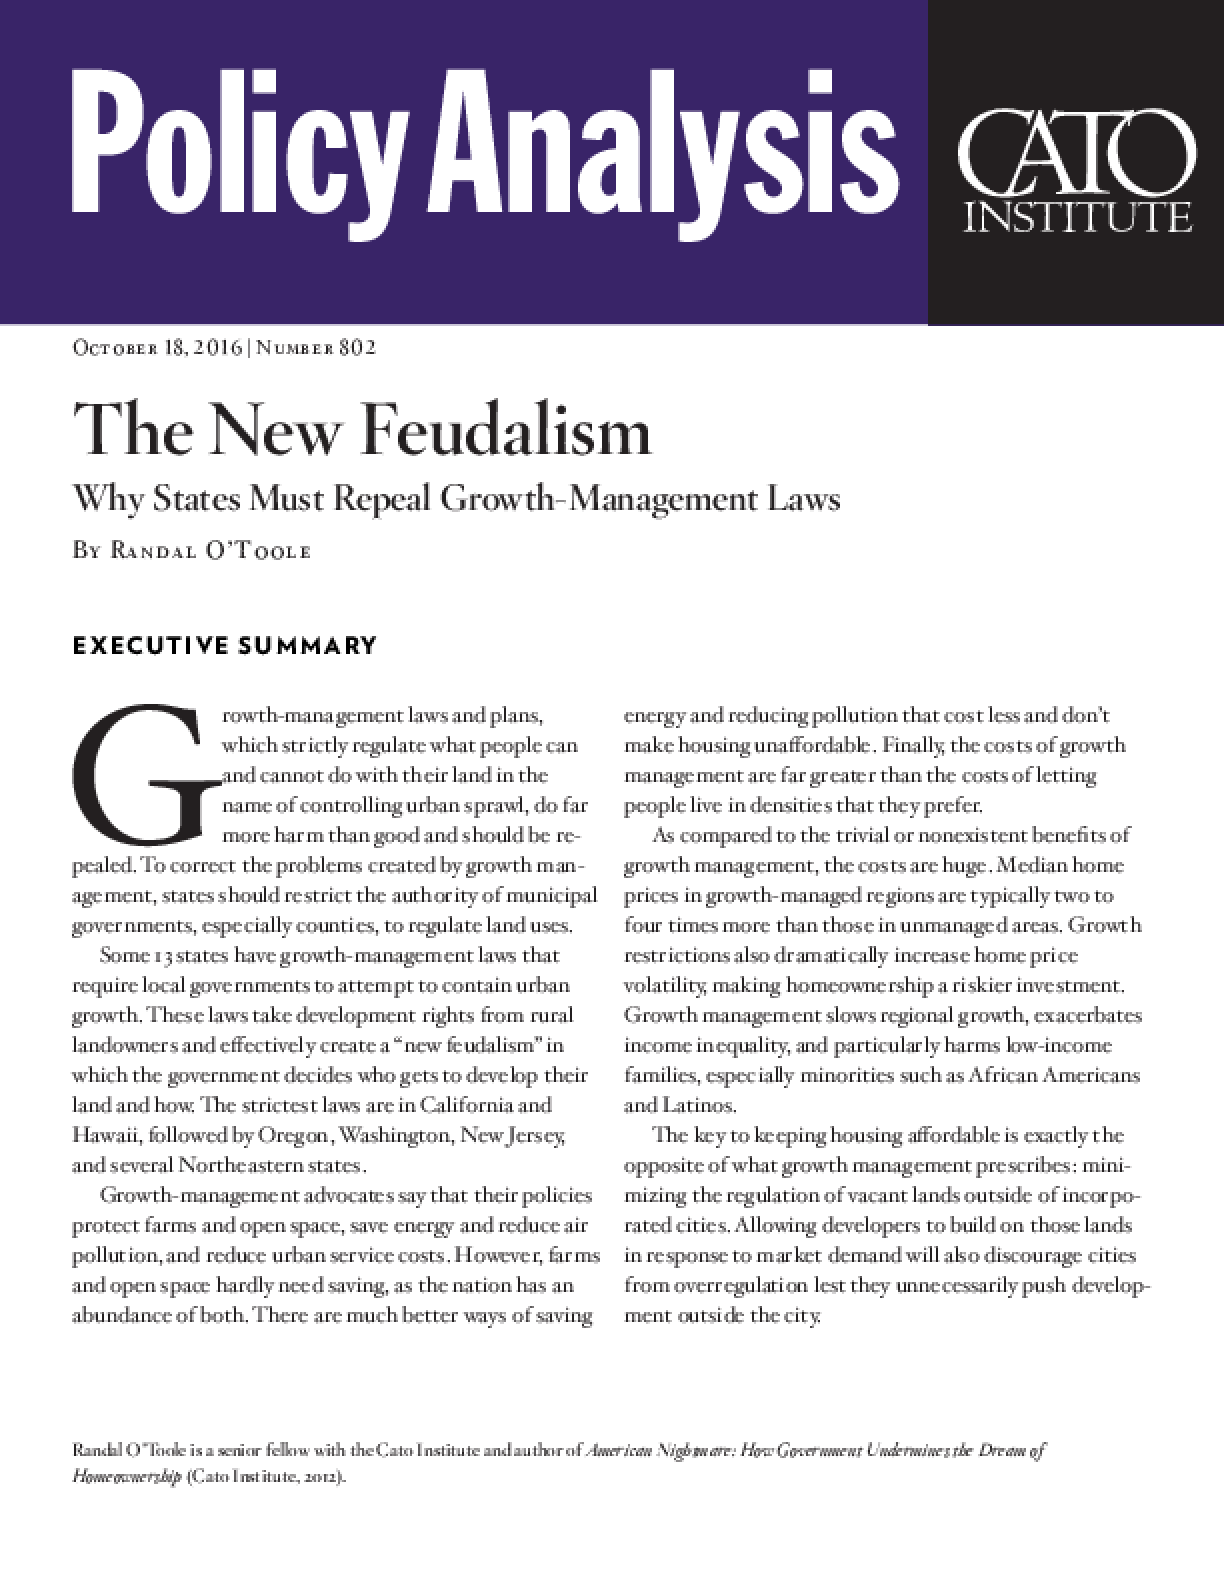 The New Feudalism: Why States Must Repeal Growth-Management Laws